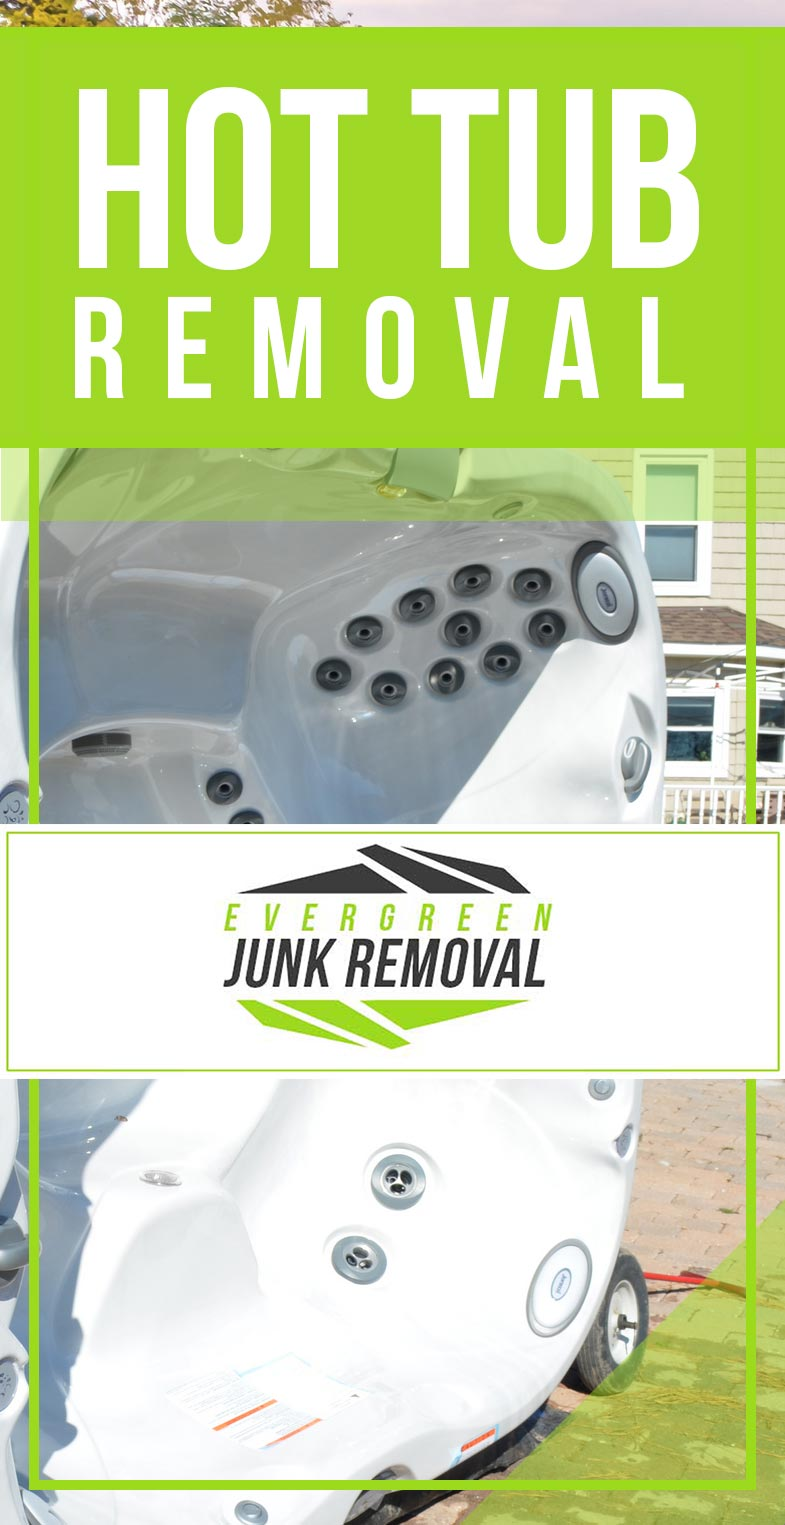 Plymouth Hot Tub Removal